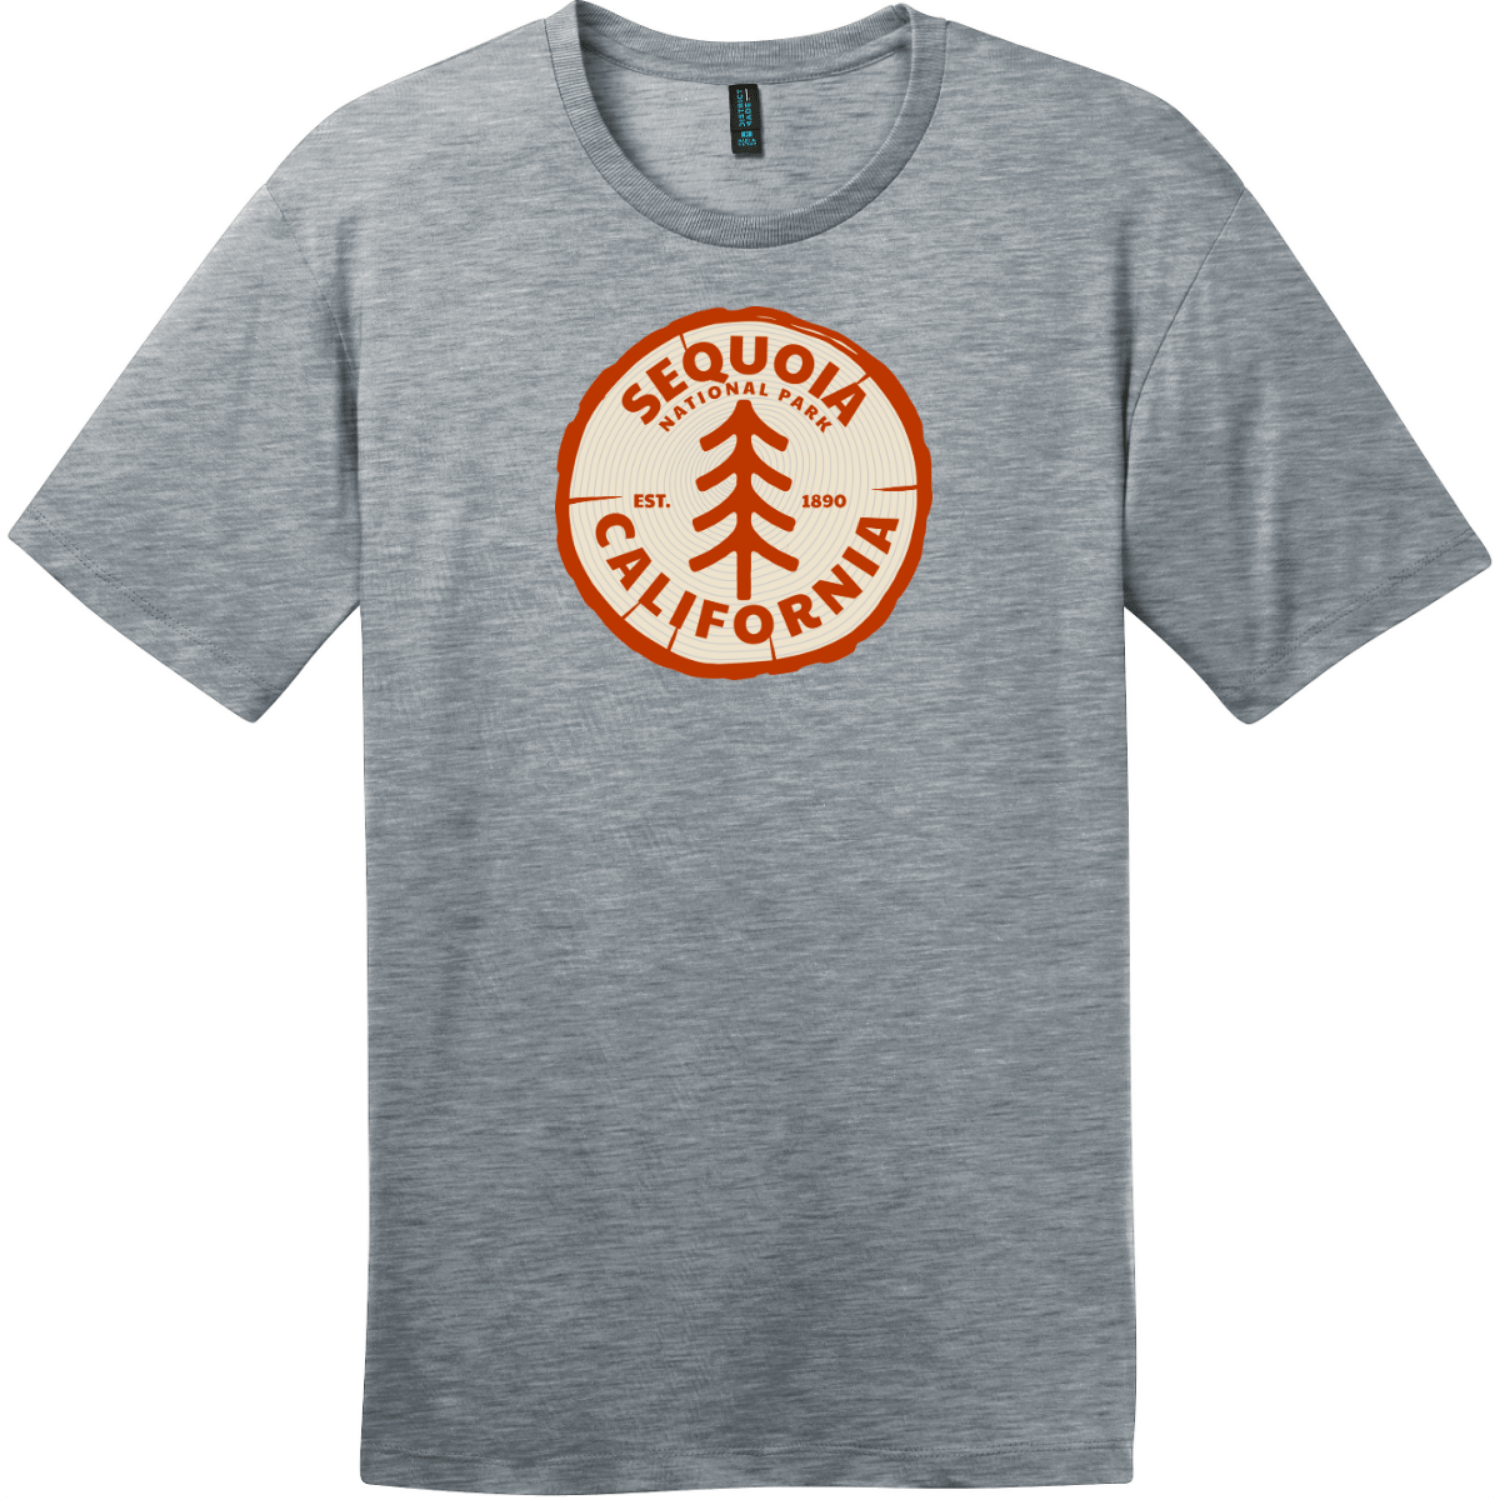 Sequoia National Park California Tree T-Shirt Heathered Steel District Perfect Weight Tee DT104